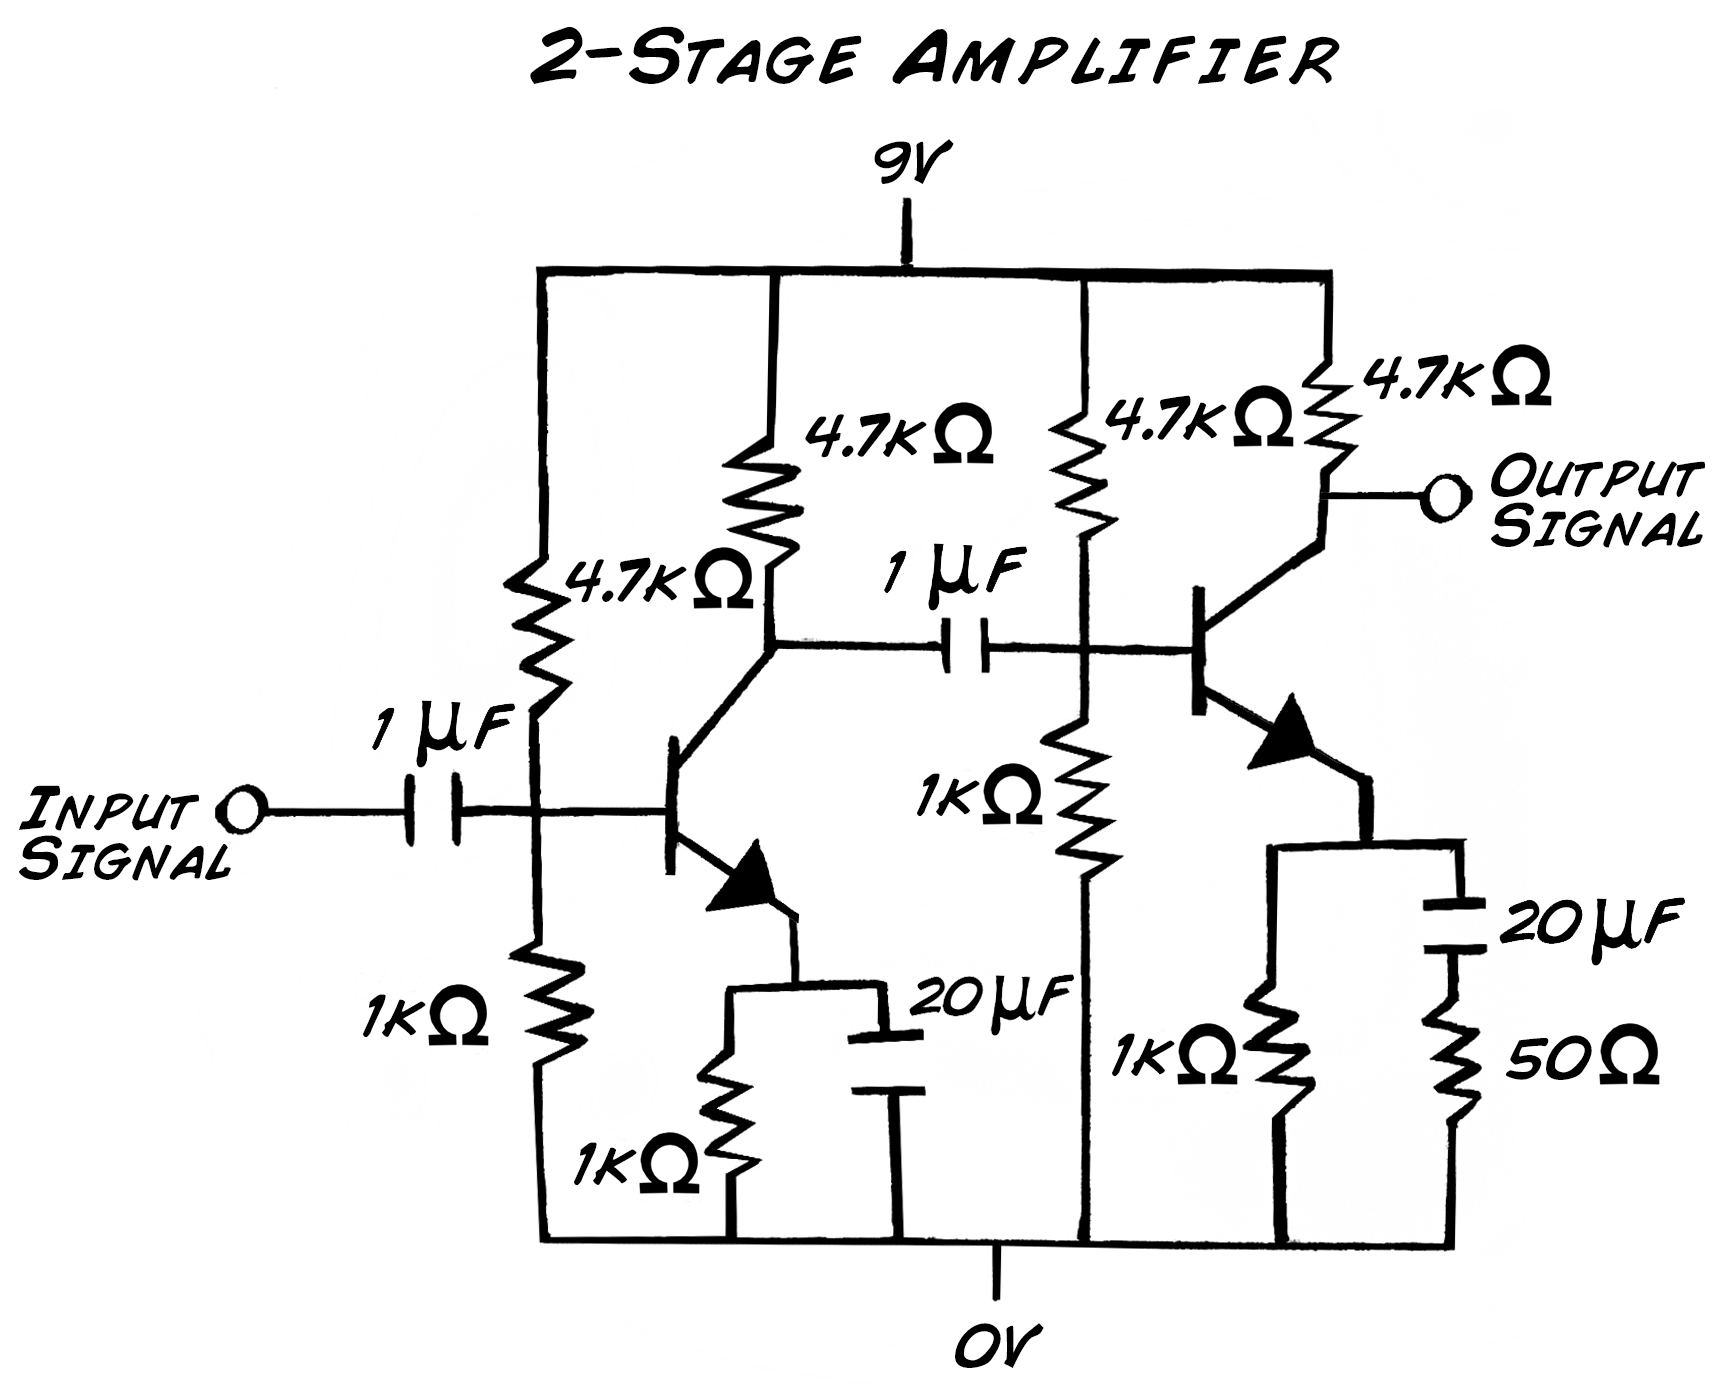 Experiment Transistor Circuit Design Resistors Simple Voltage Divider Question Electrical Engineering Build The